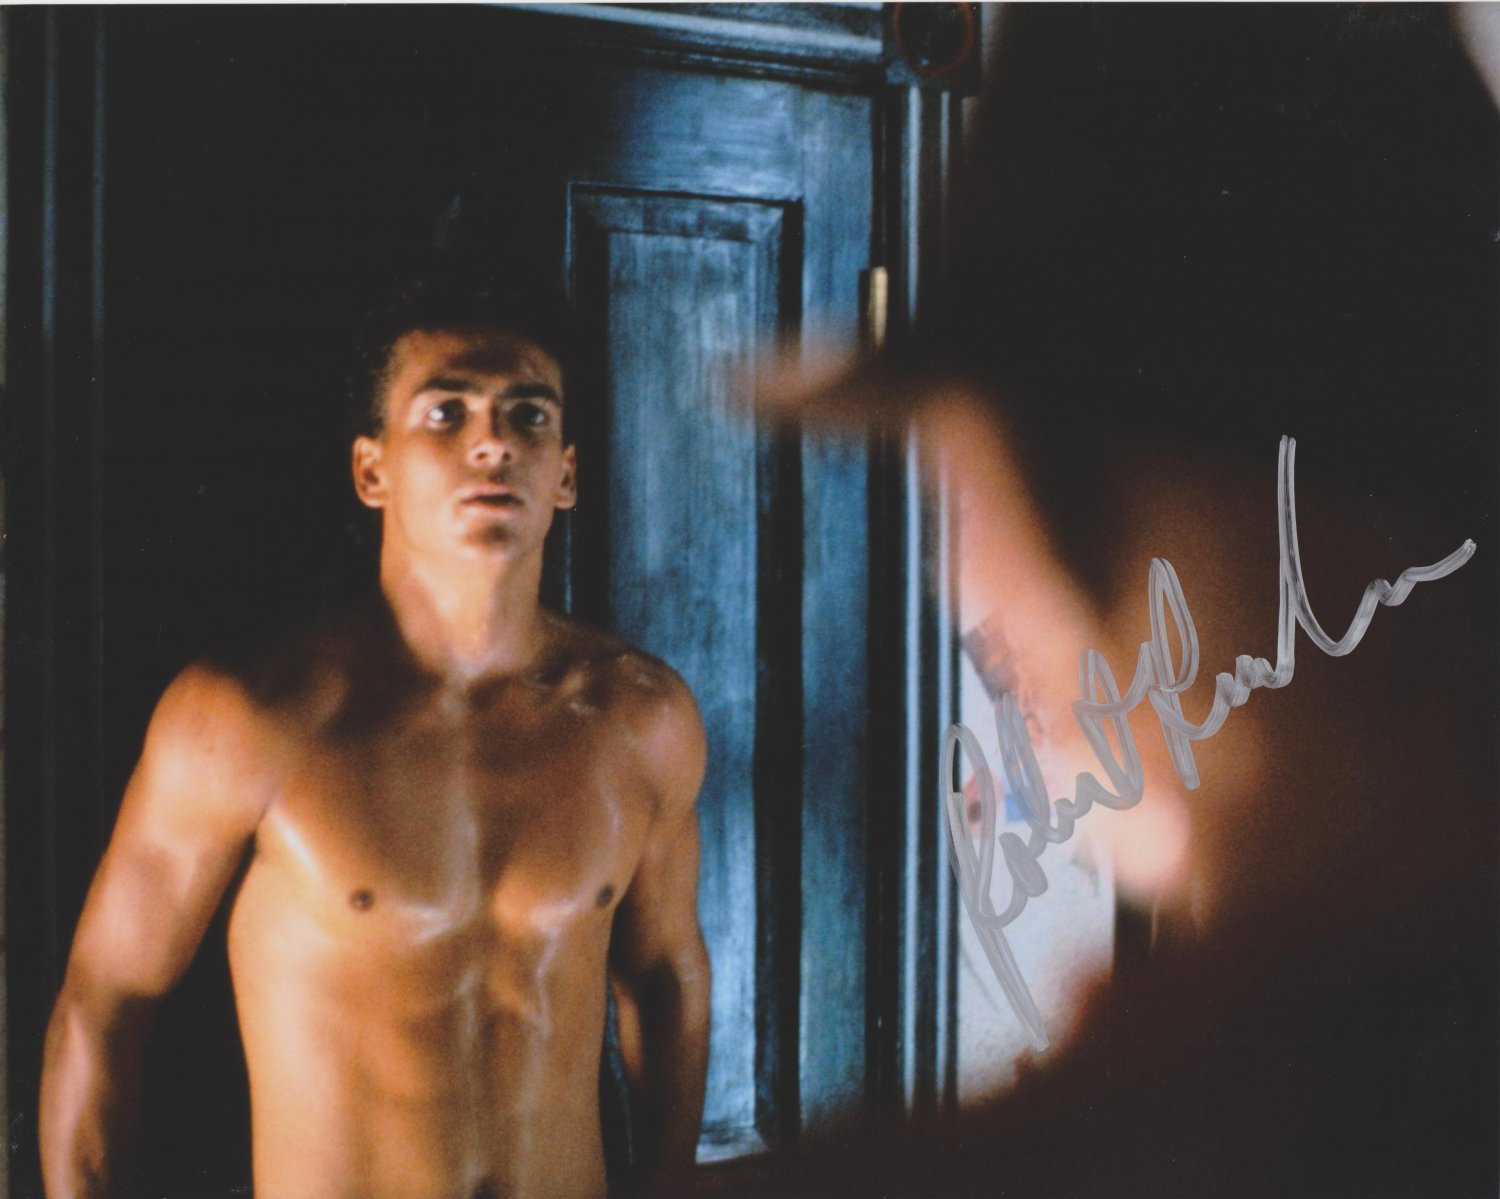 "Robert Rusler 8 X 10"" A Nightmare on Elm St Part 2 Autographed Photo - (Ref:000319)"